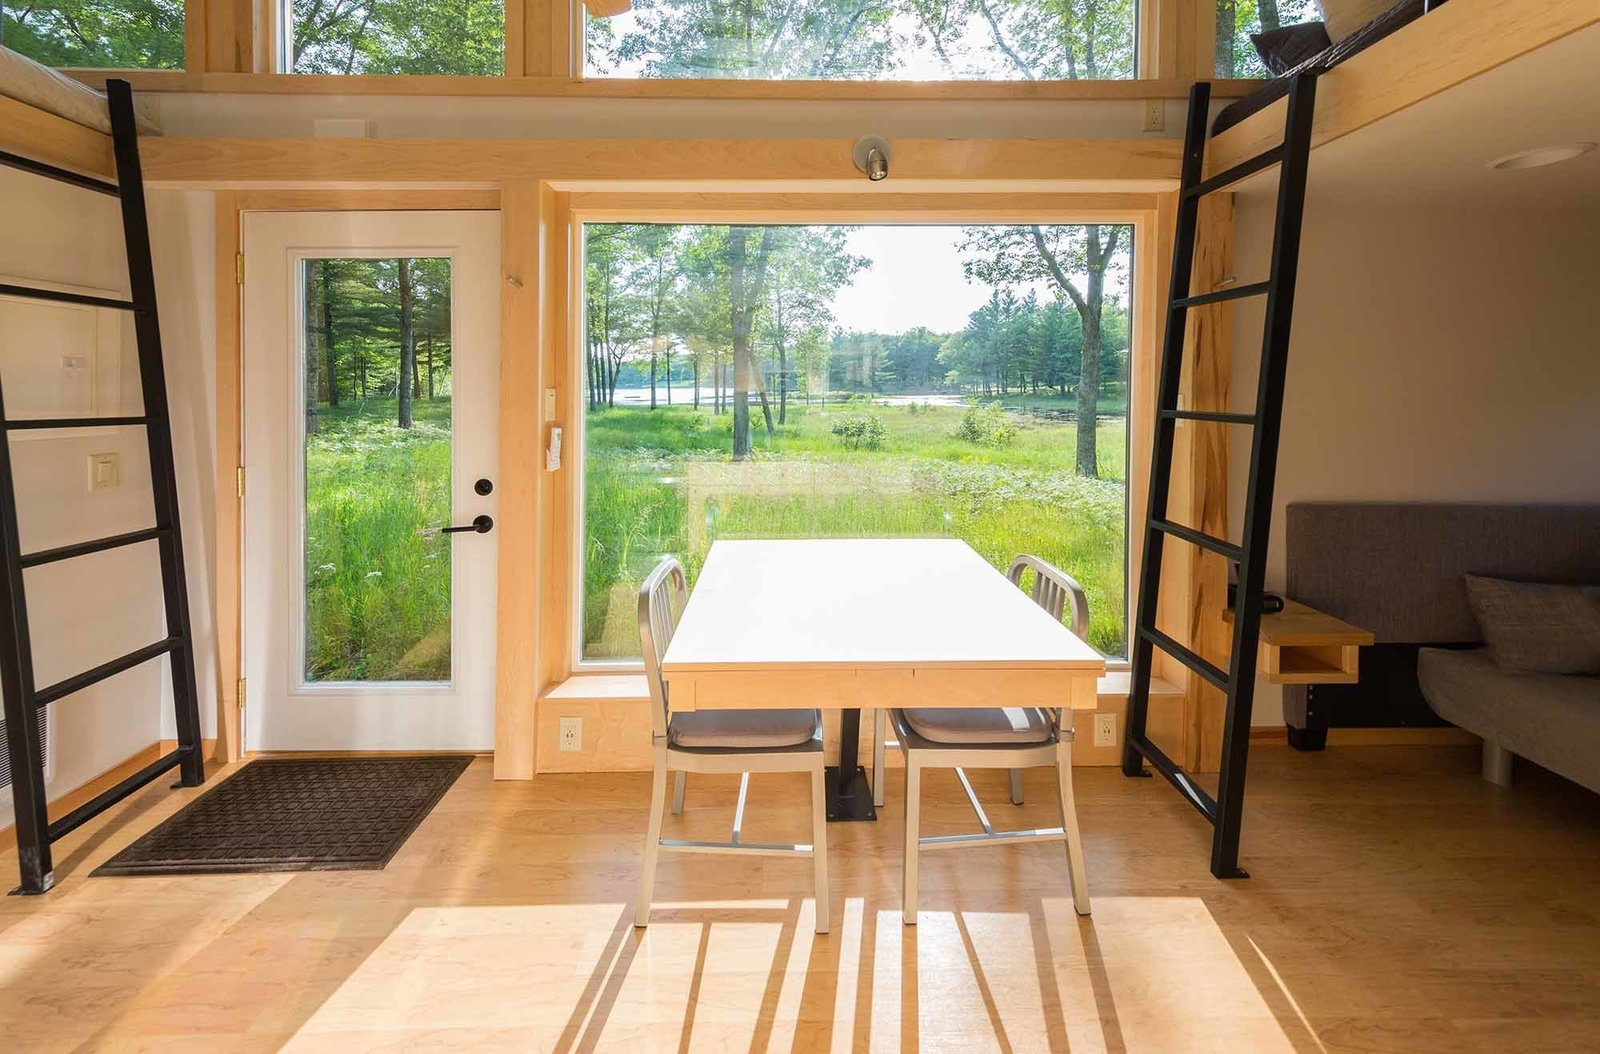 Low-E windows form an energy-efficient seal and usher in natural light.  Shining Examples of Clerestory Windows by Luke Hopping from This Travel-Ready Trailer May Look Small, But It Can Sleep Six